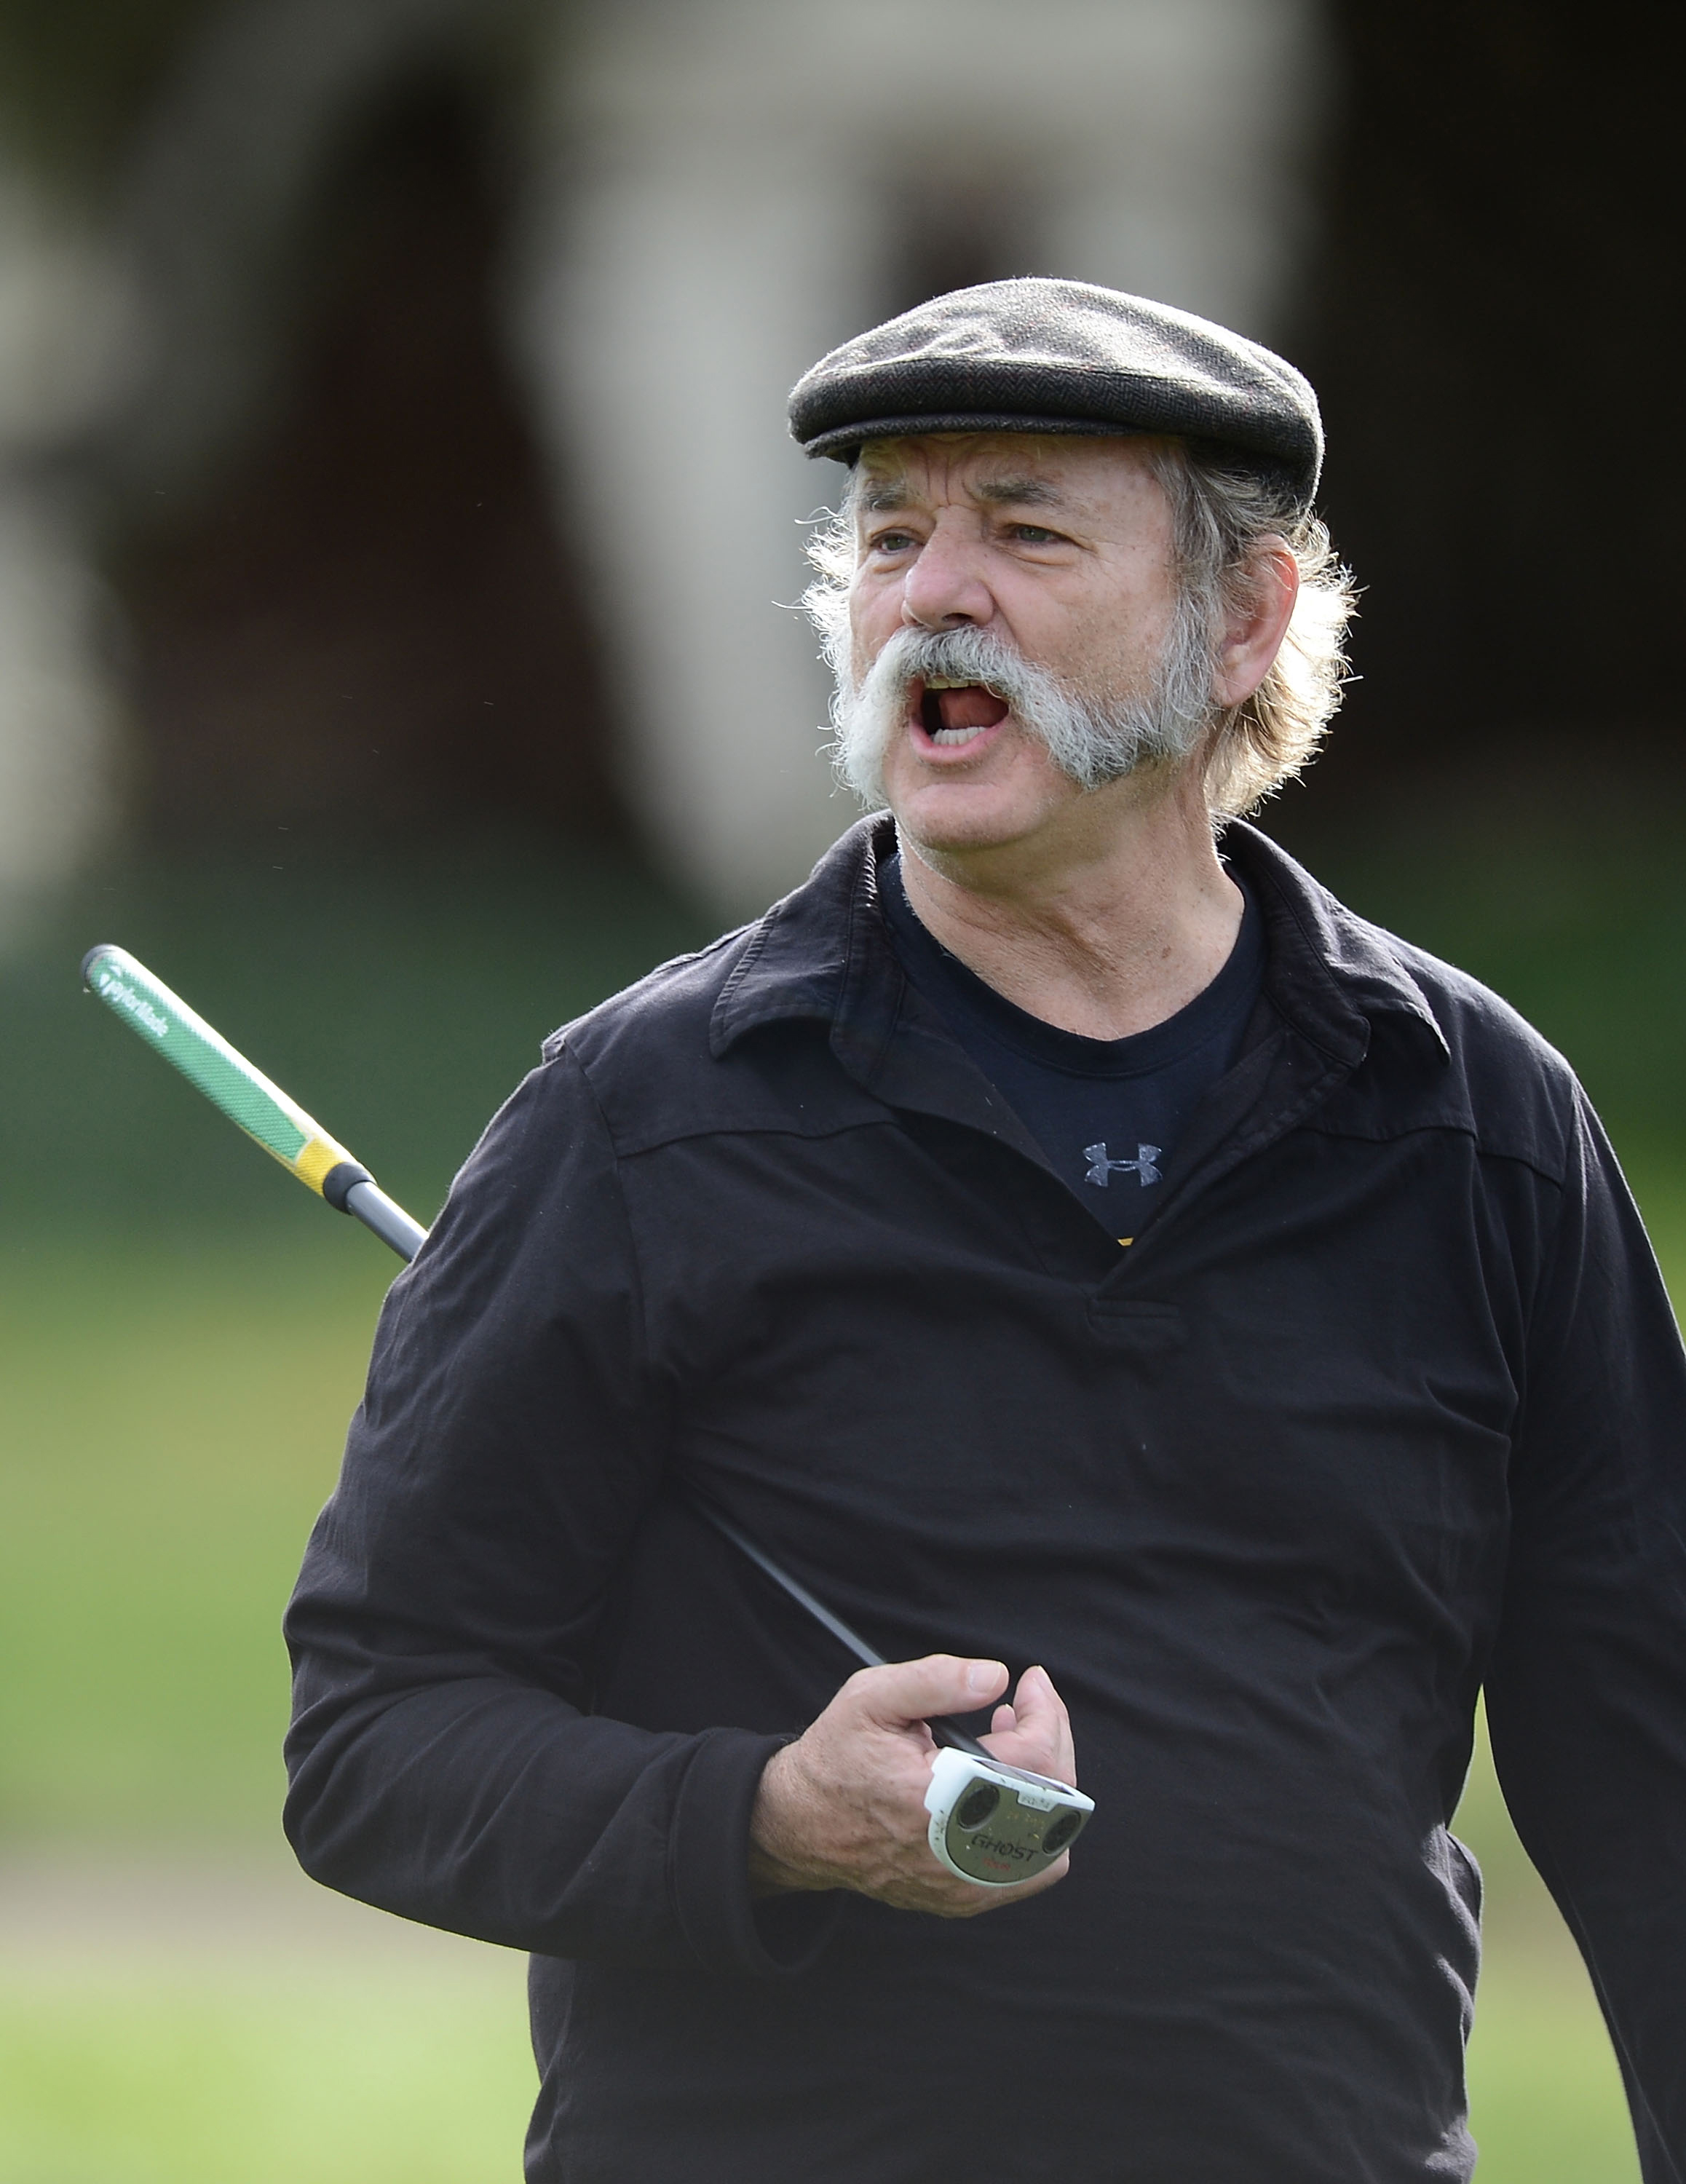 Young Bill Murray Mustache I need a proper hat fo...